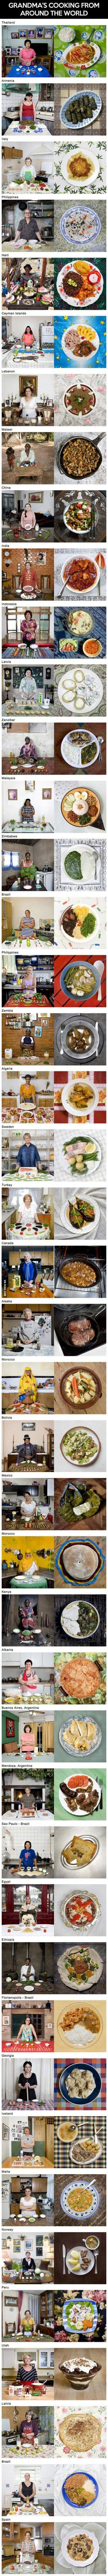 Grandmas' Cooking From Around The World (Gabriele Galimberti)